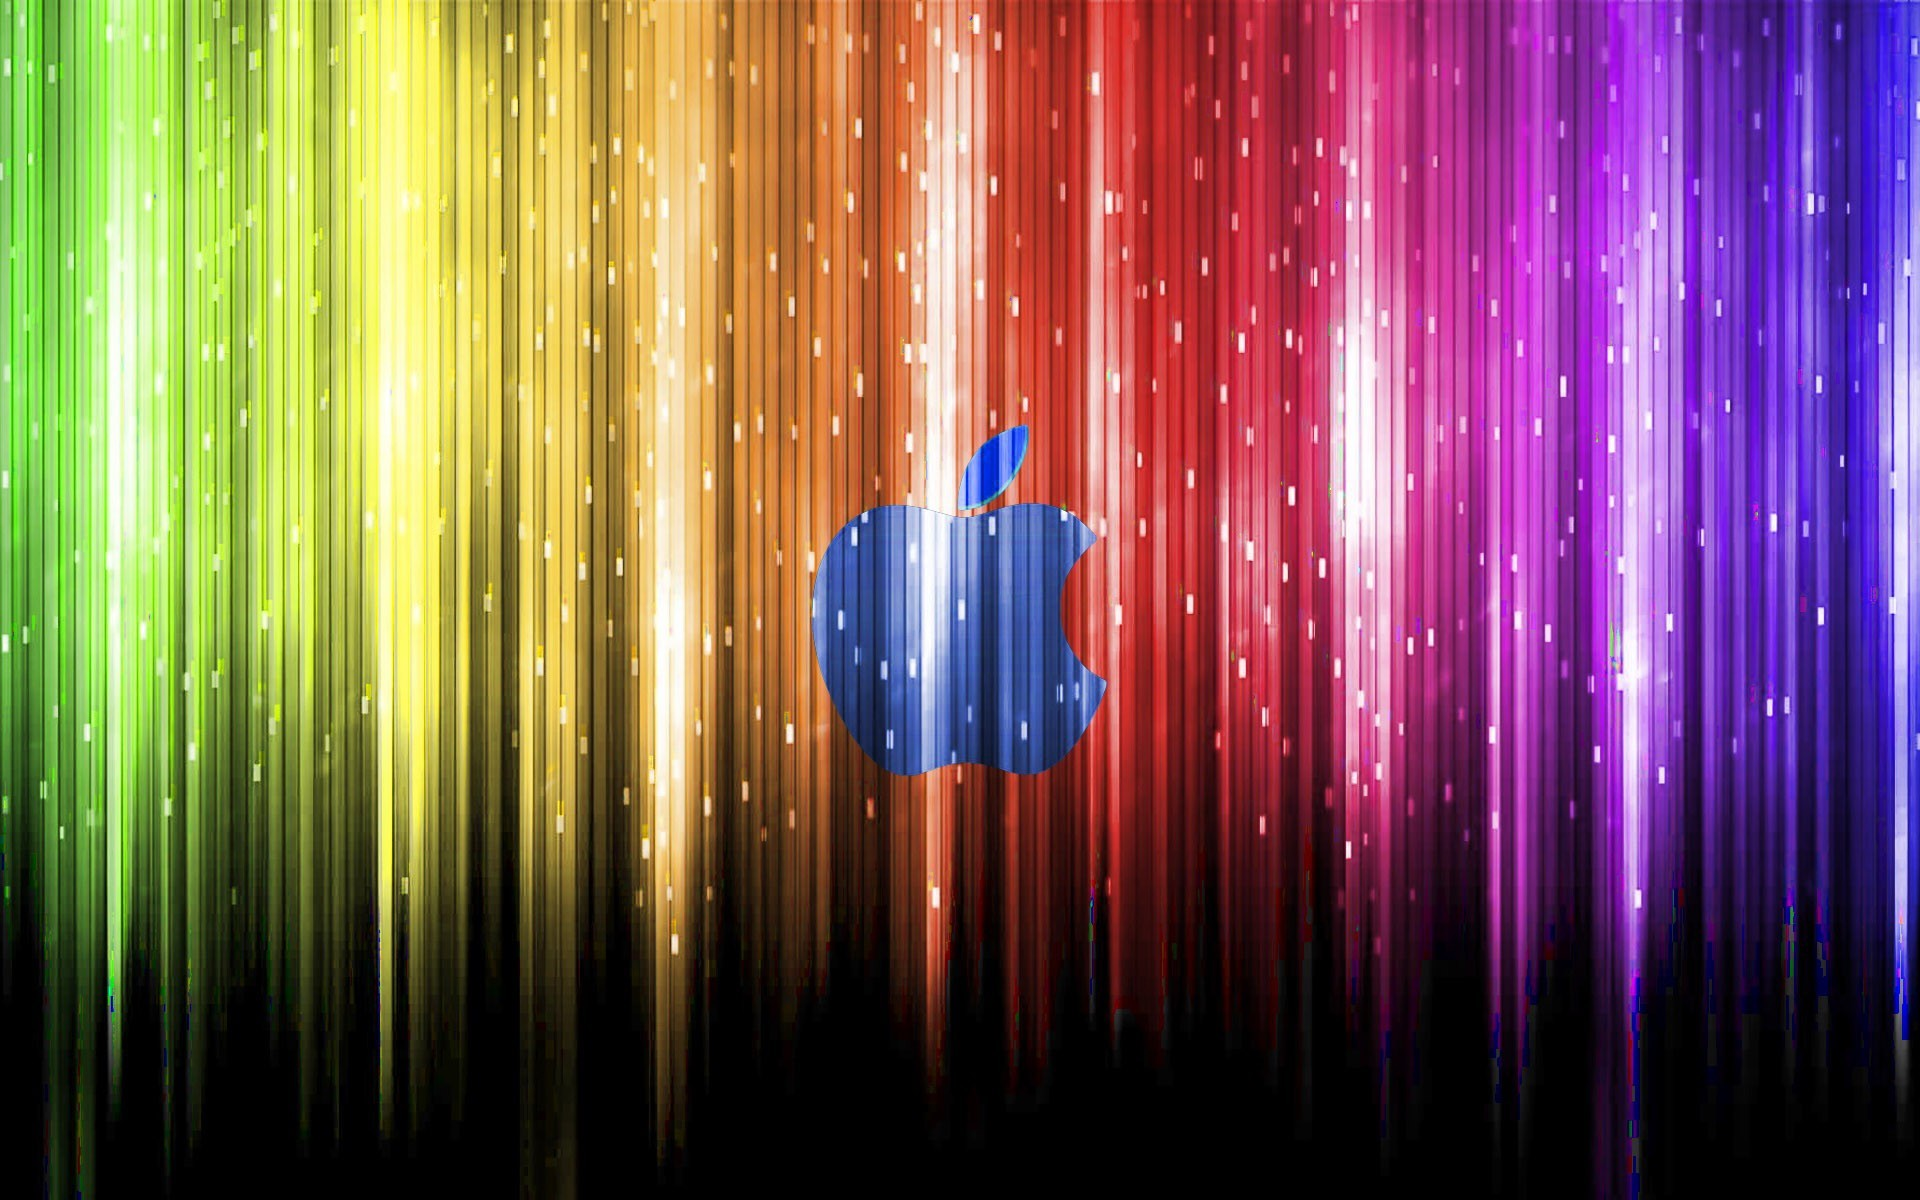 abstract apple inc logos HD Wallpaper